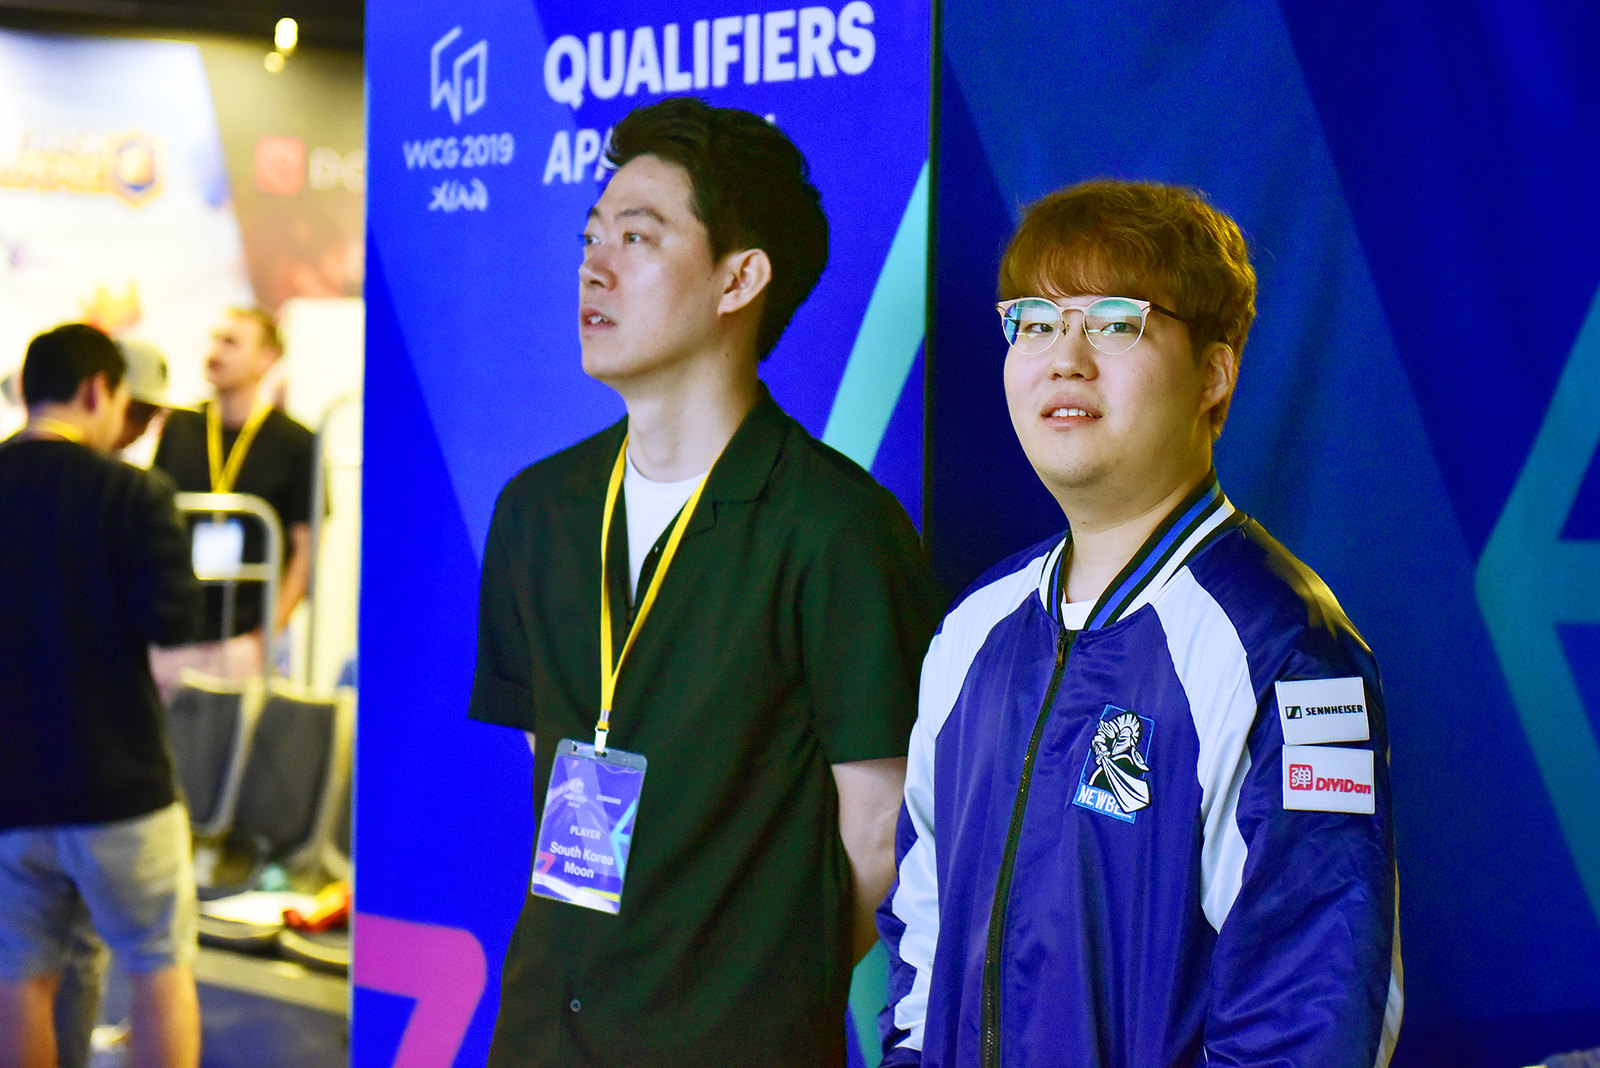 Lawliet and Moon Qualify for the WCG Grand Finals - Esports PH